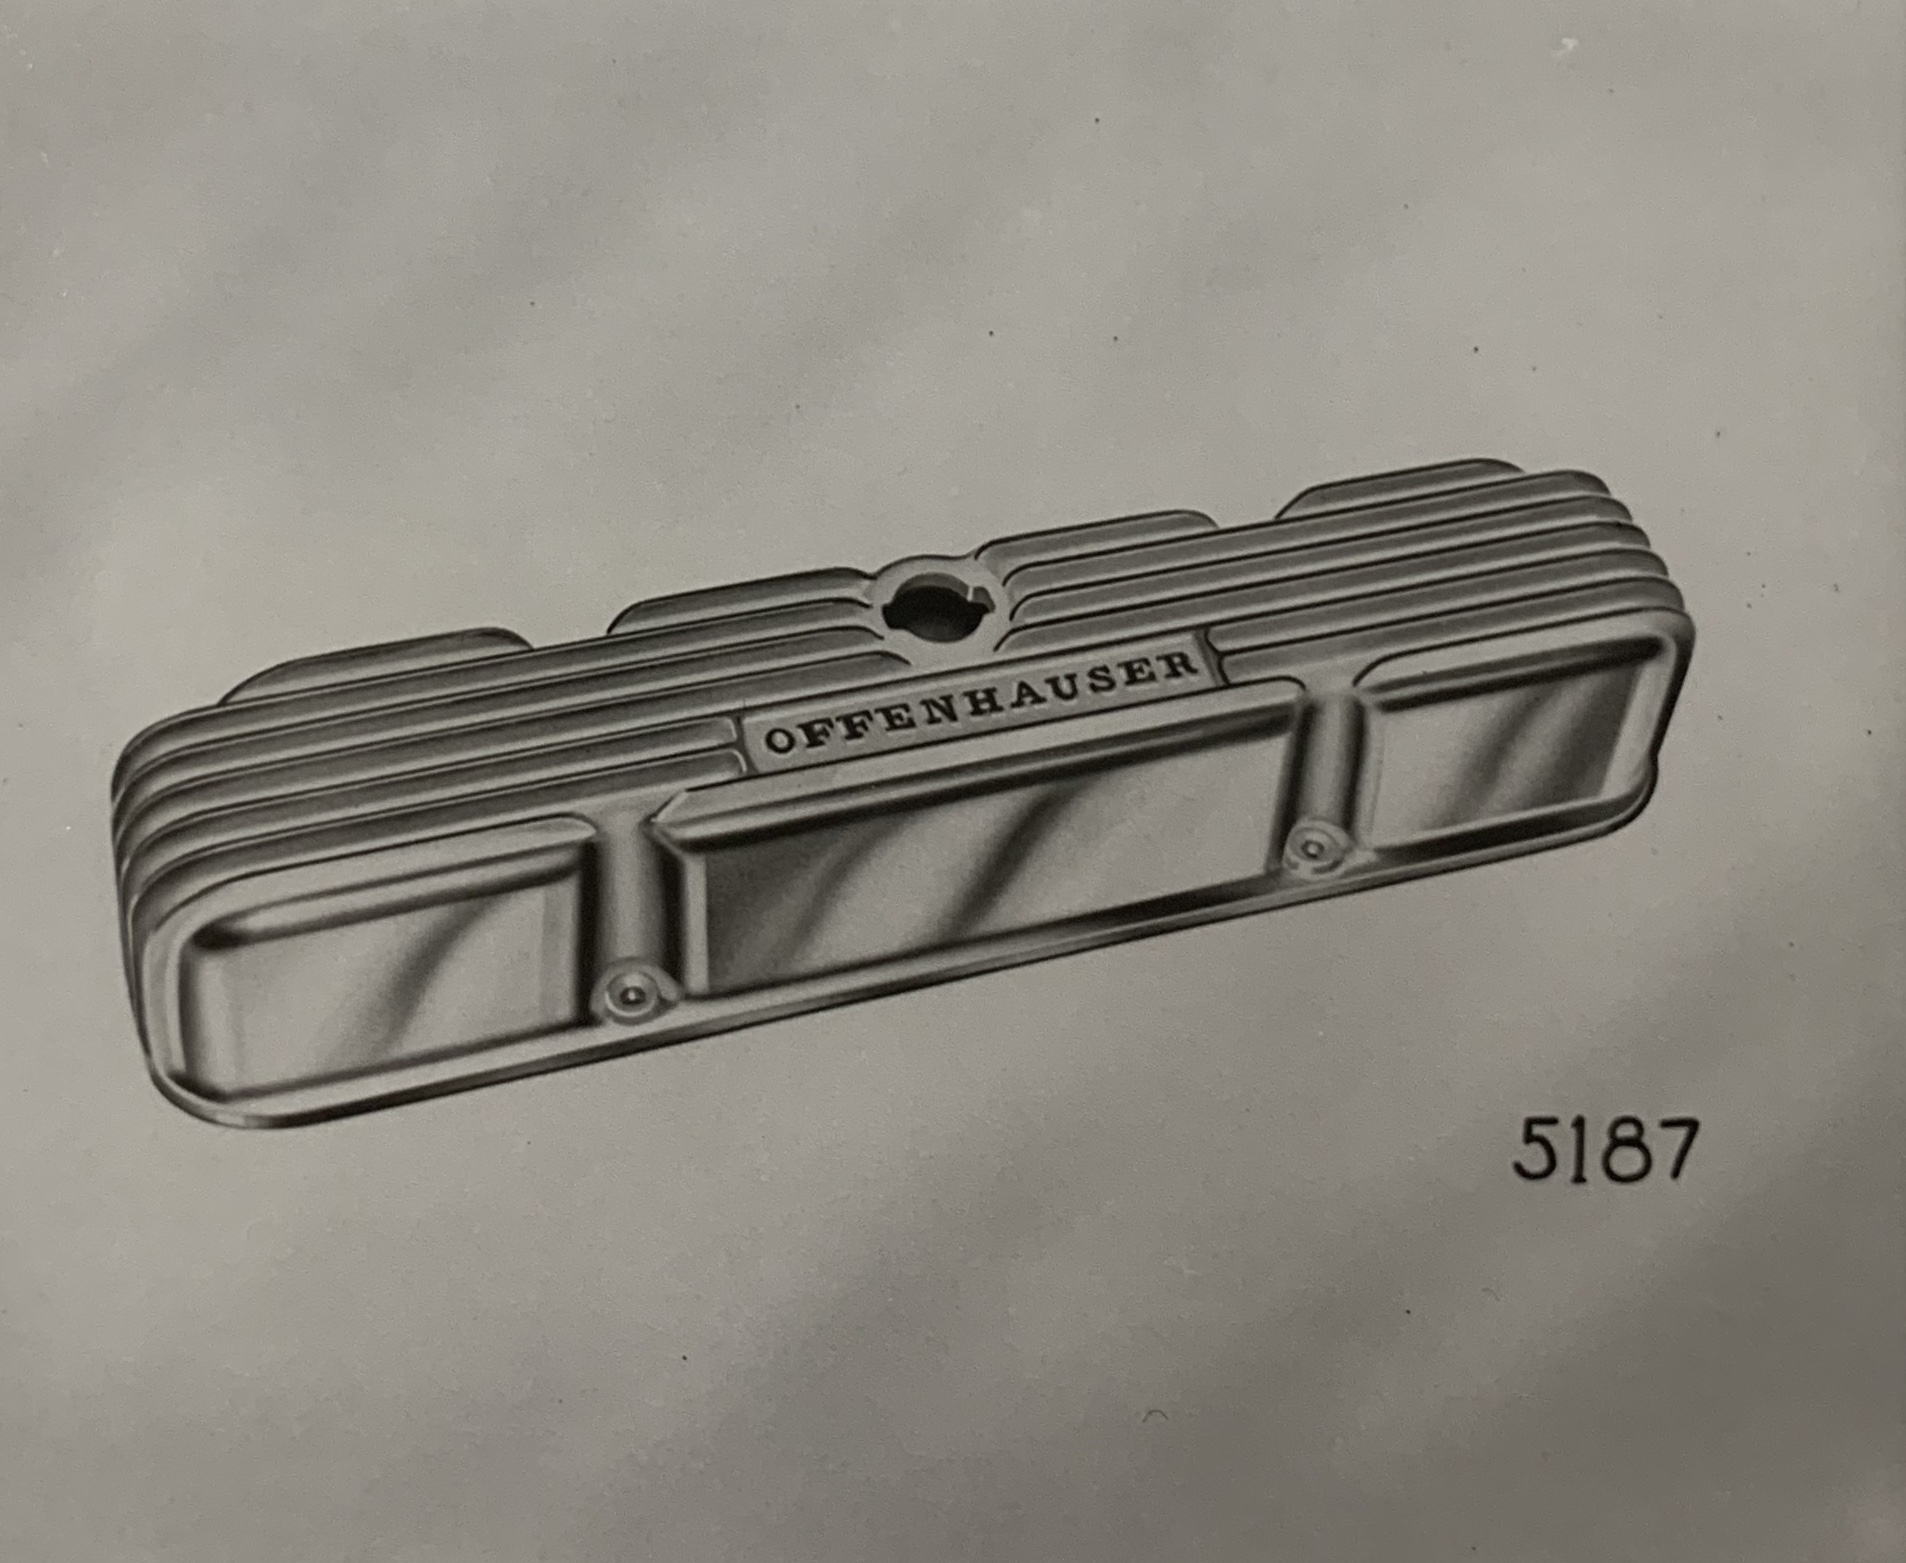 Offenhauser 5187 Valve Covers